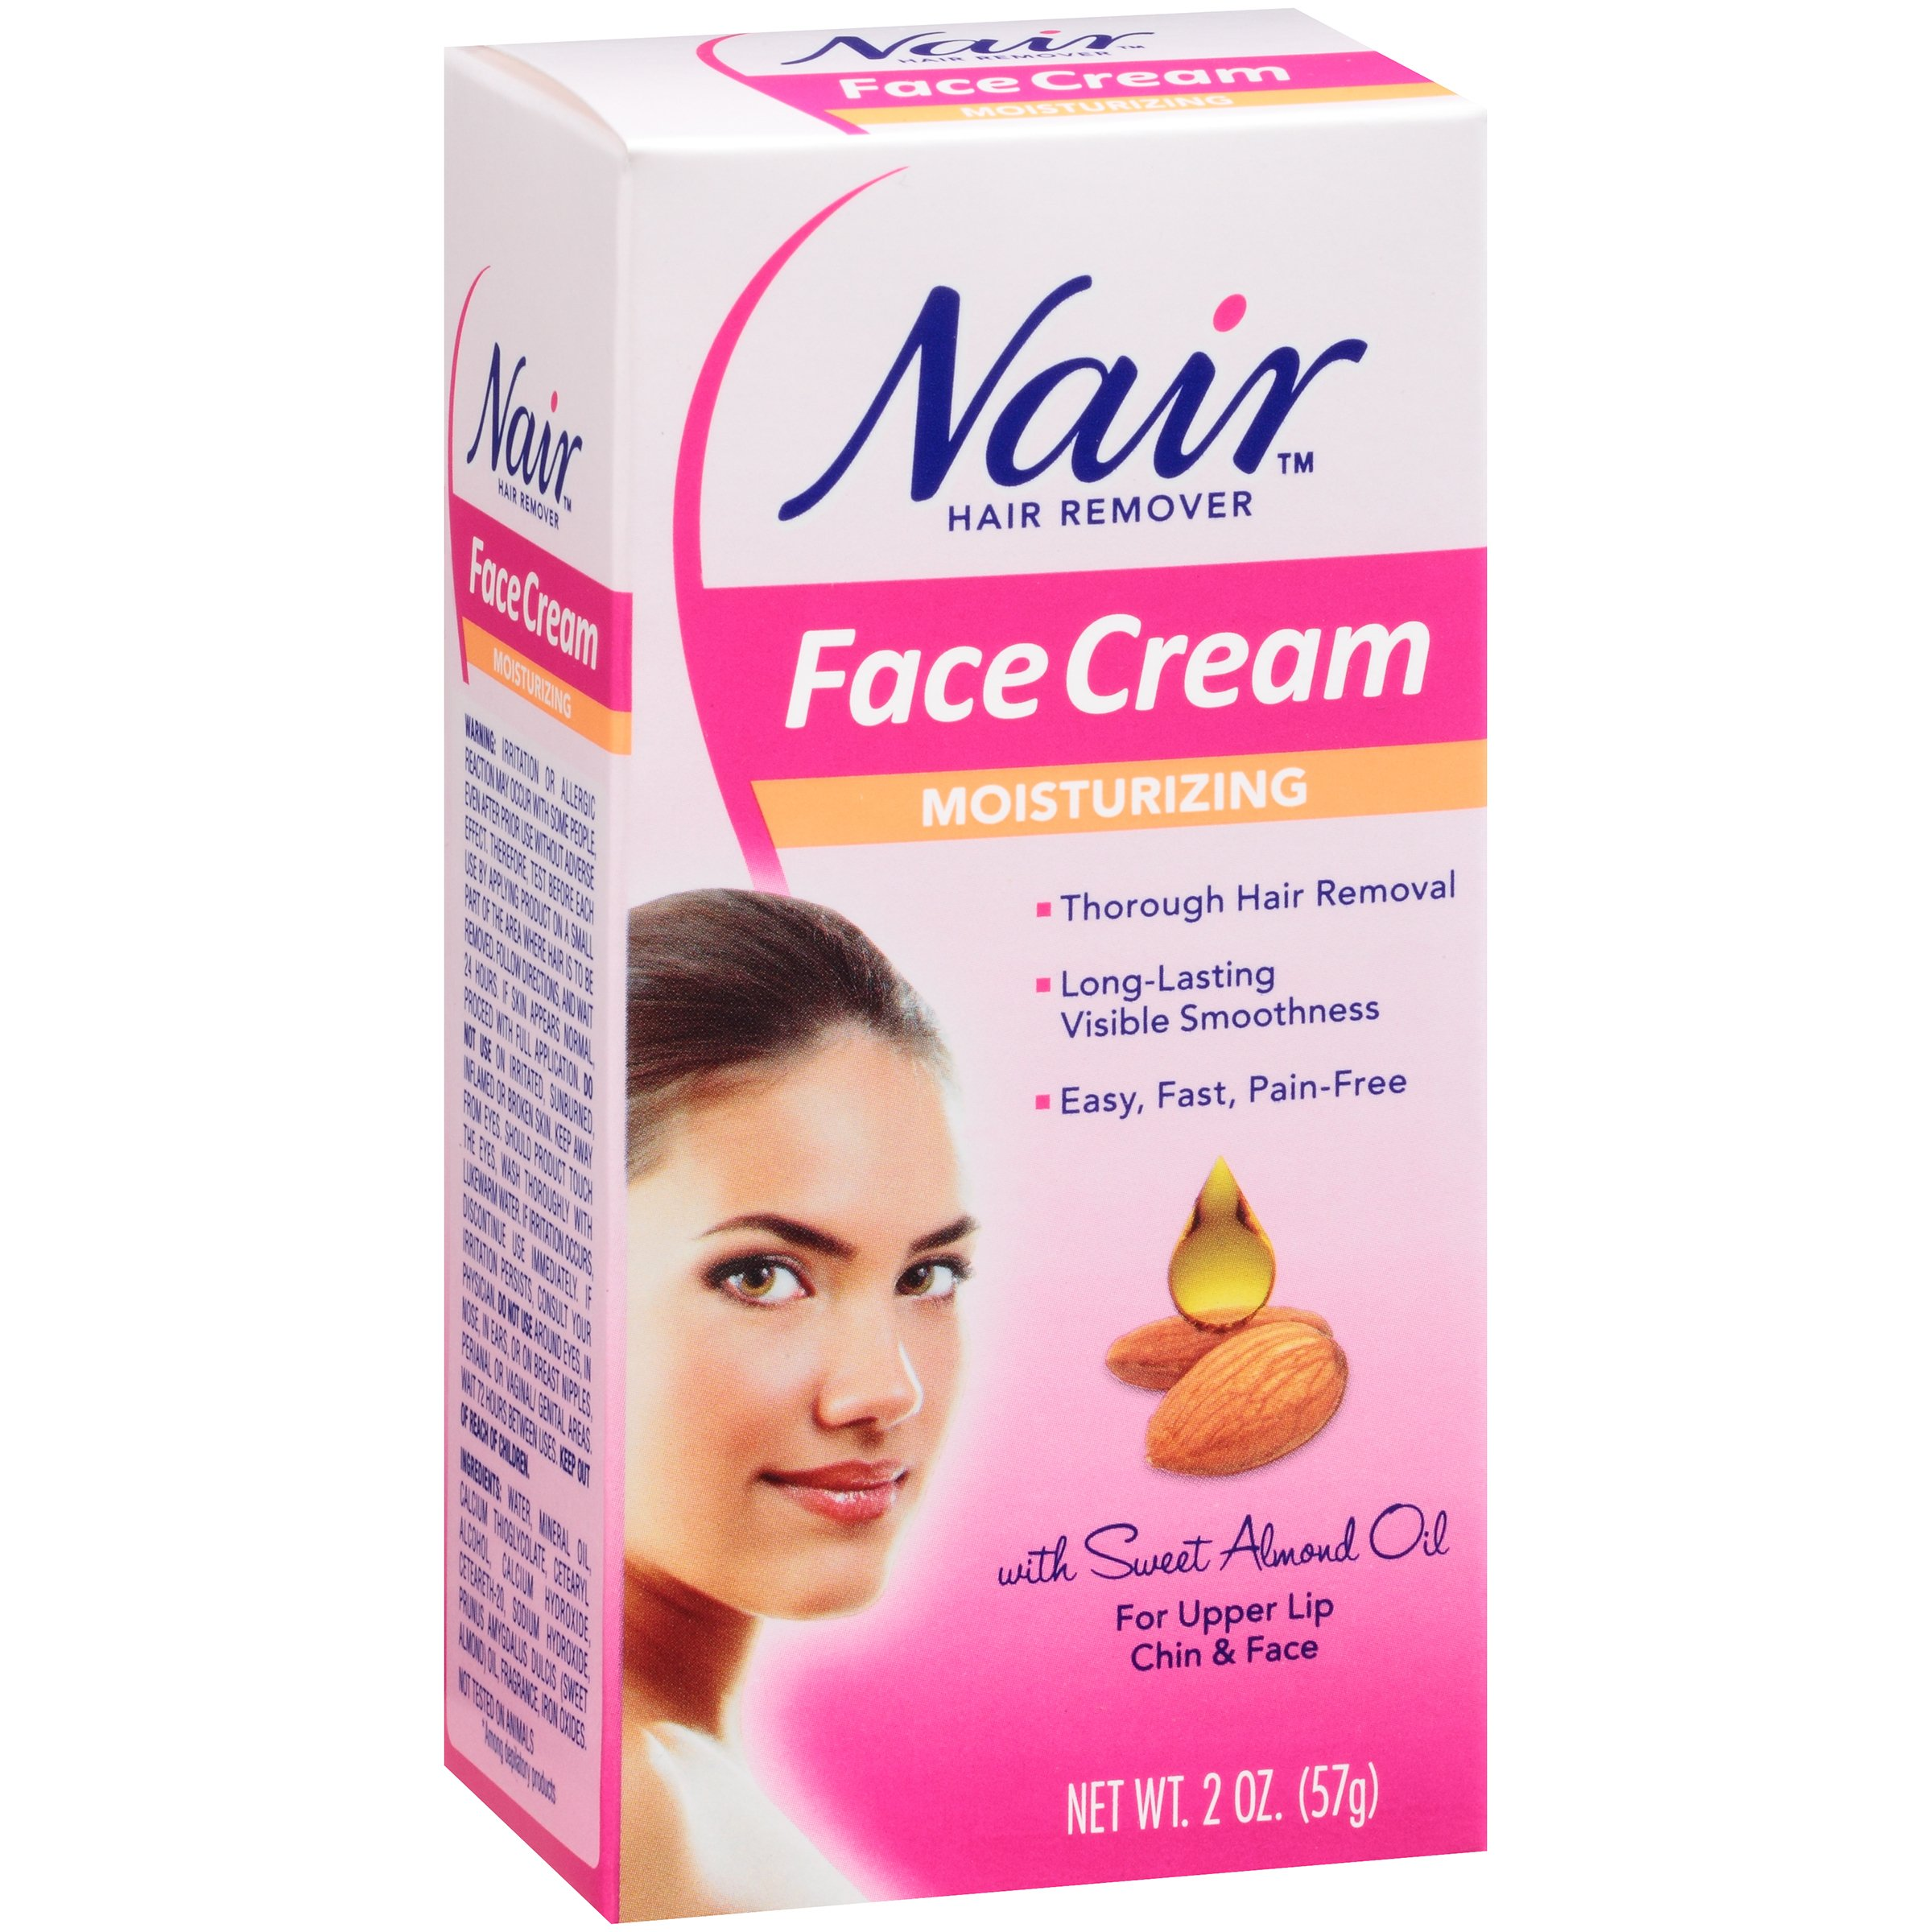 Nair Moisturizing Face Cream Hair Remover Shop Shaving Hair Removal At H E B